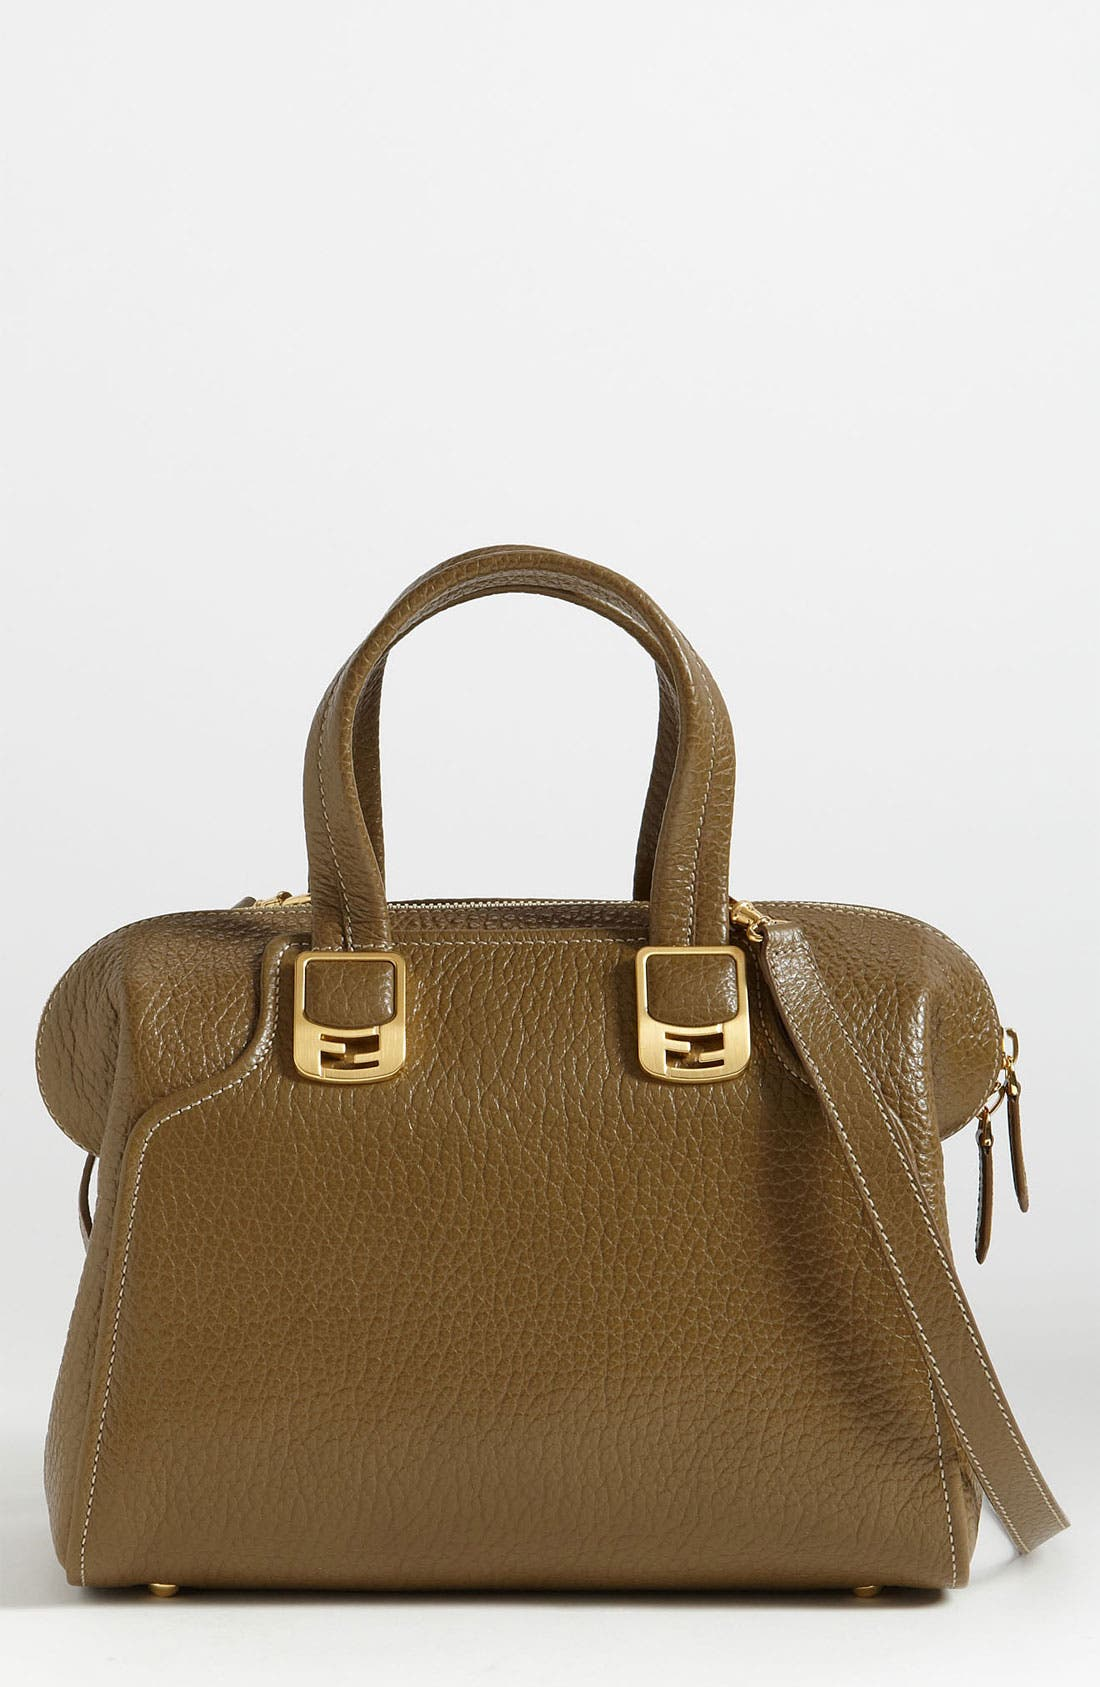 Main Image - Fendi 'Chameleon - Small' Leather Tote